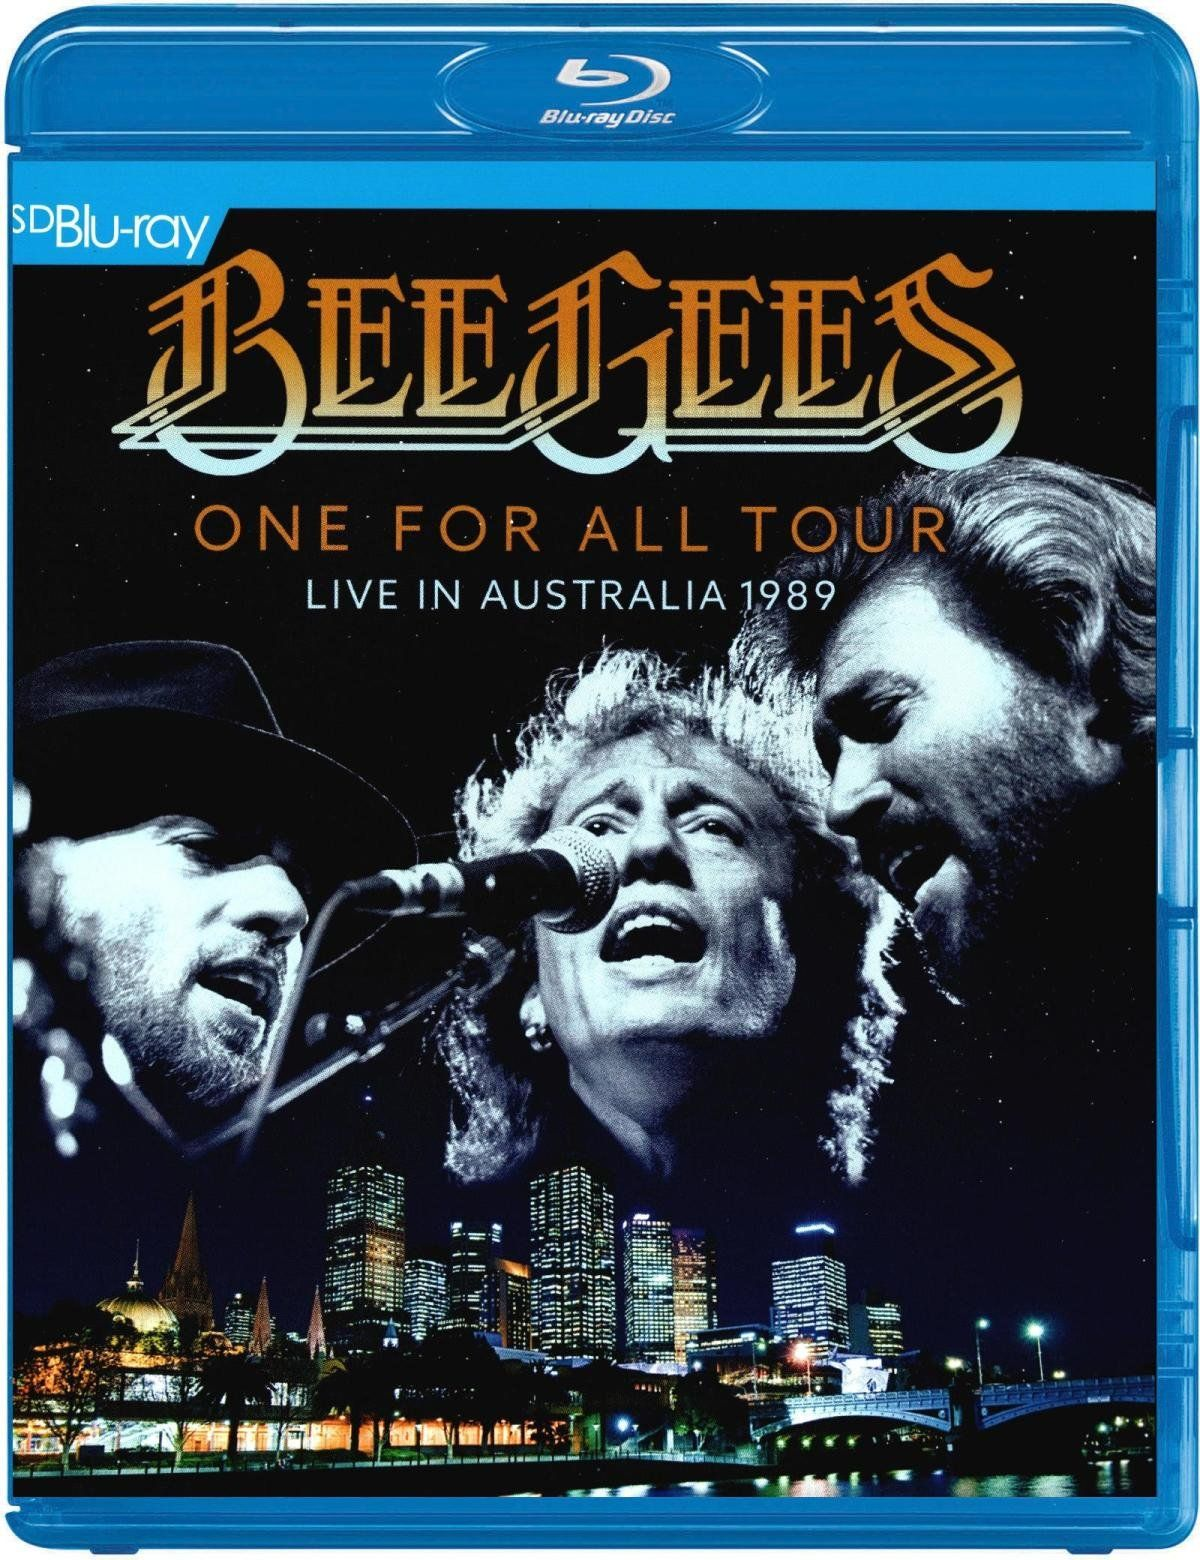 Pin by Jamie on BeeGees in 2020 Bee gees, Gees